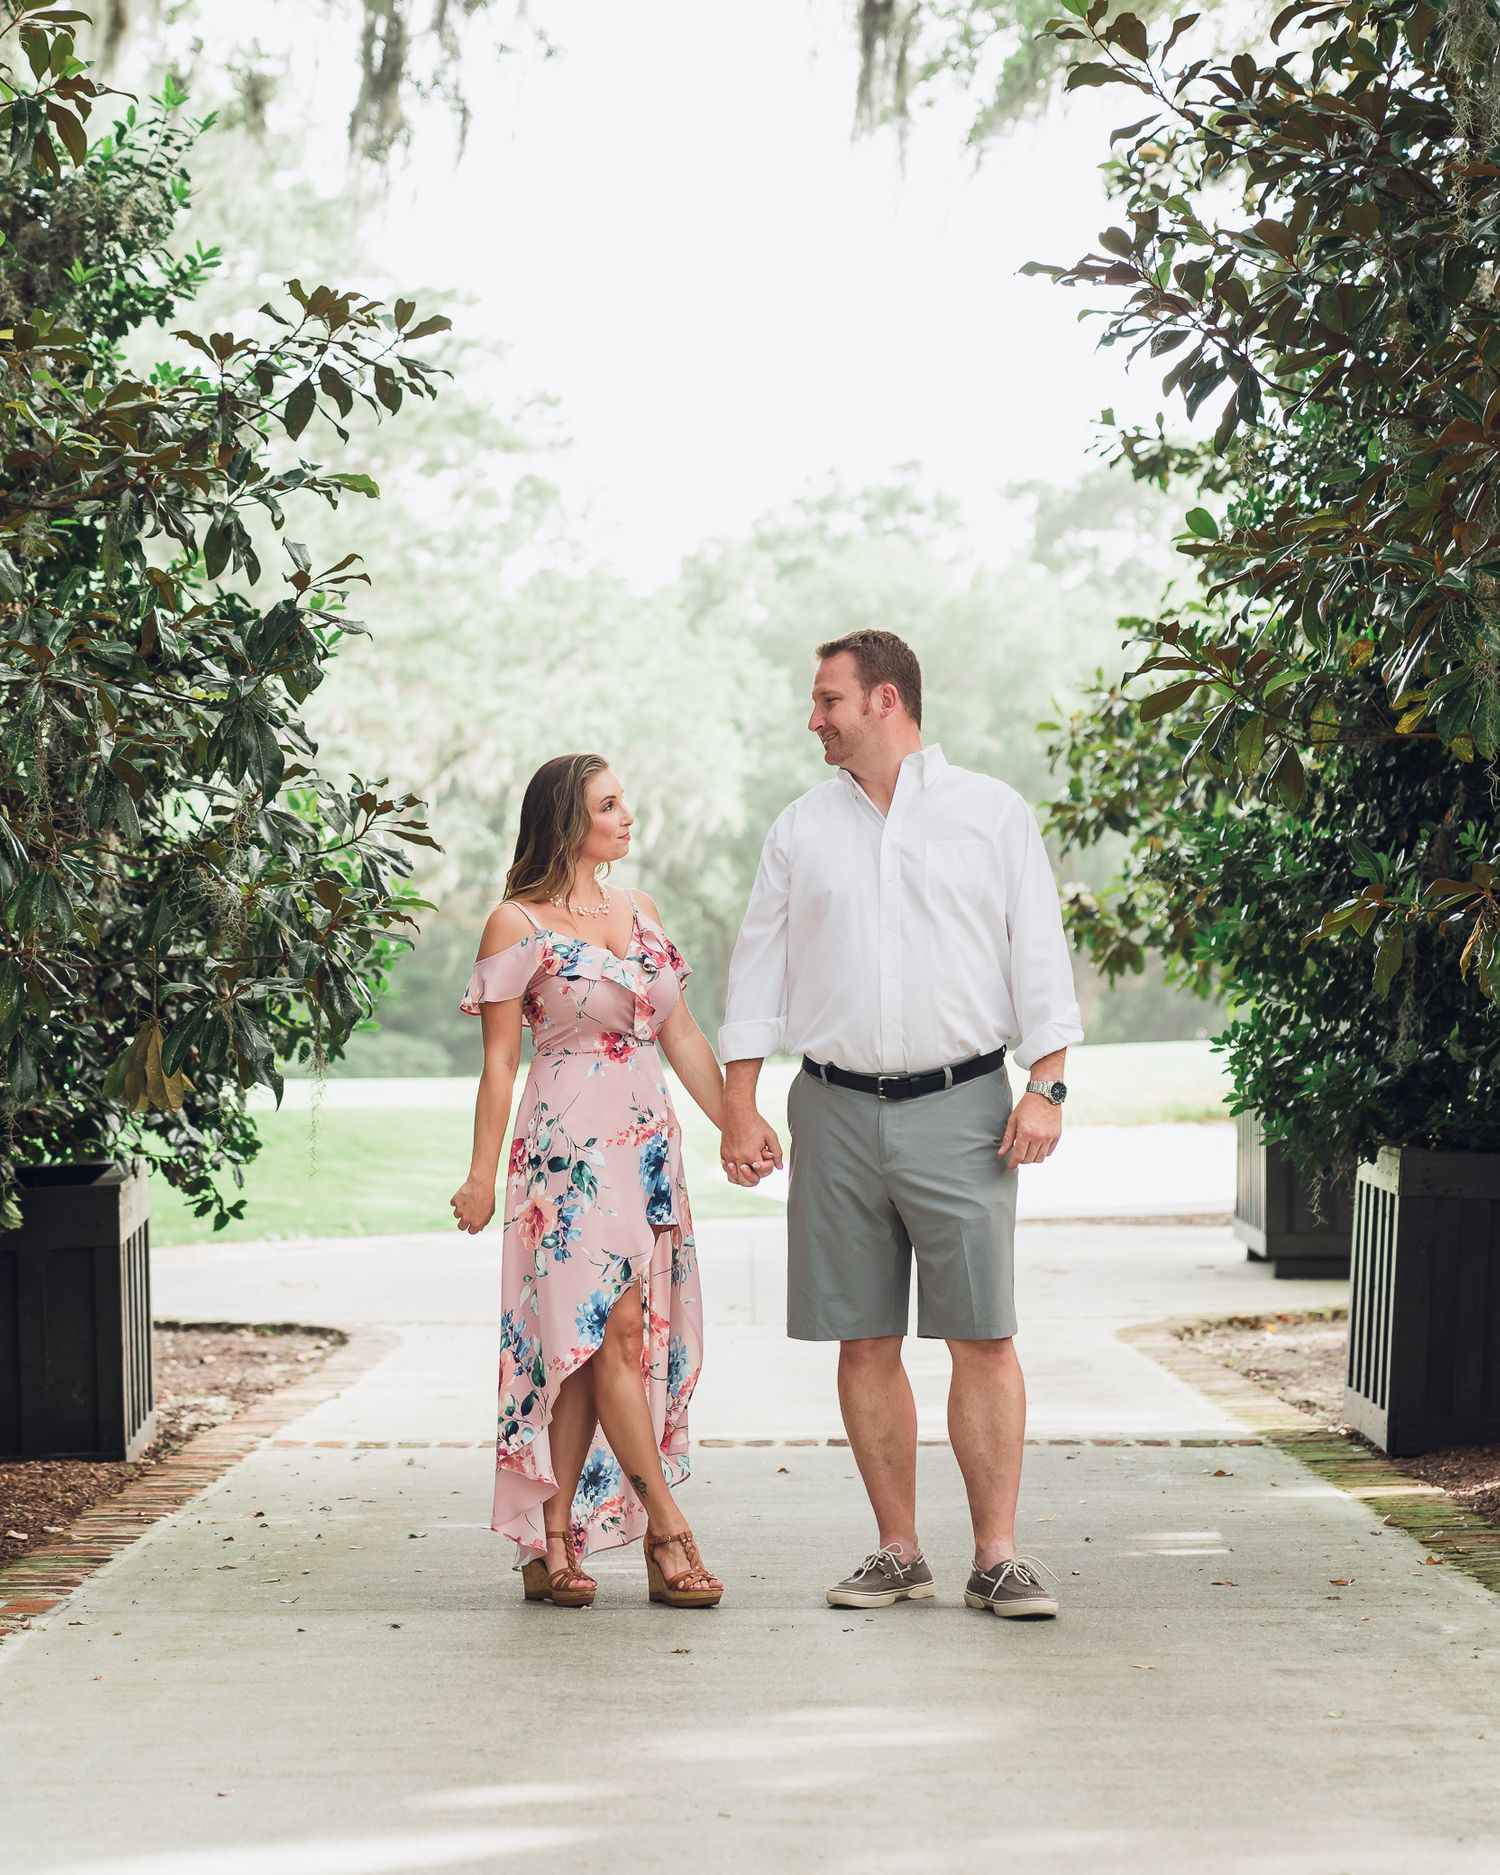 Bride & groom to be looking at each other during engagement session at Caledonia Golf & Fish Club, Pawleys Island